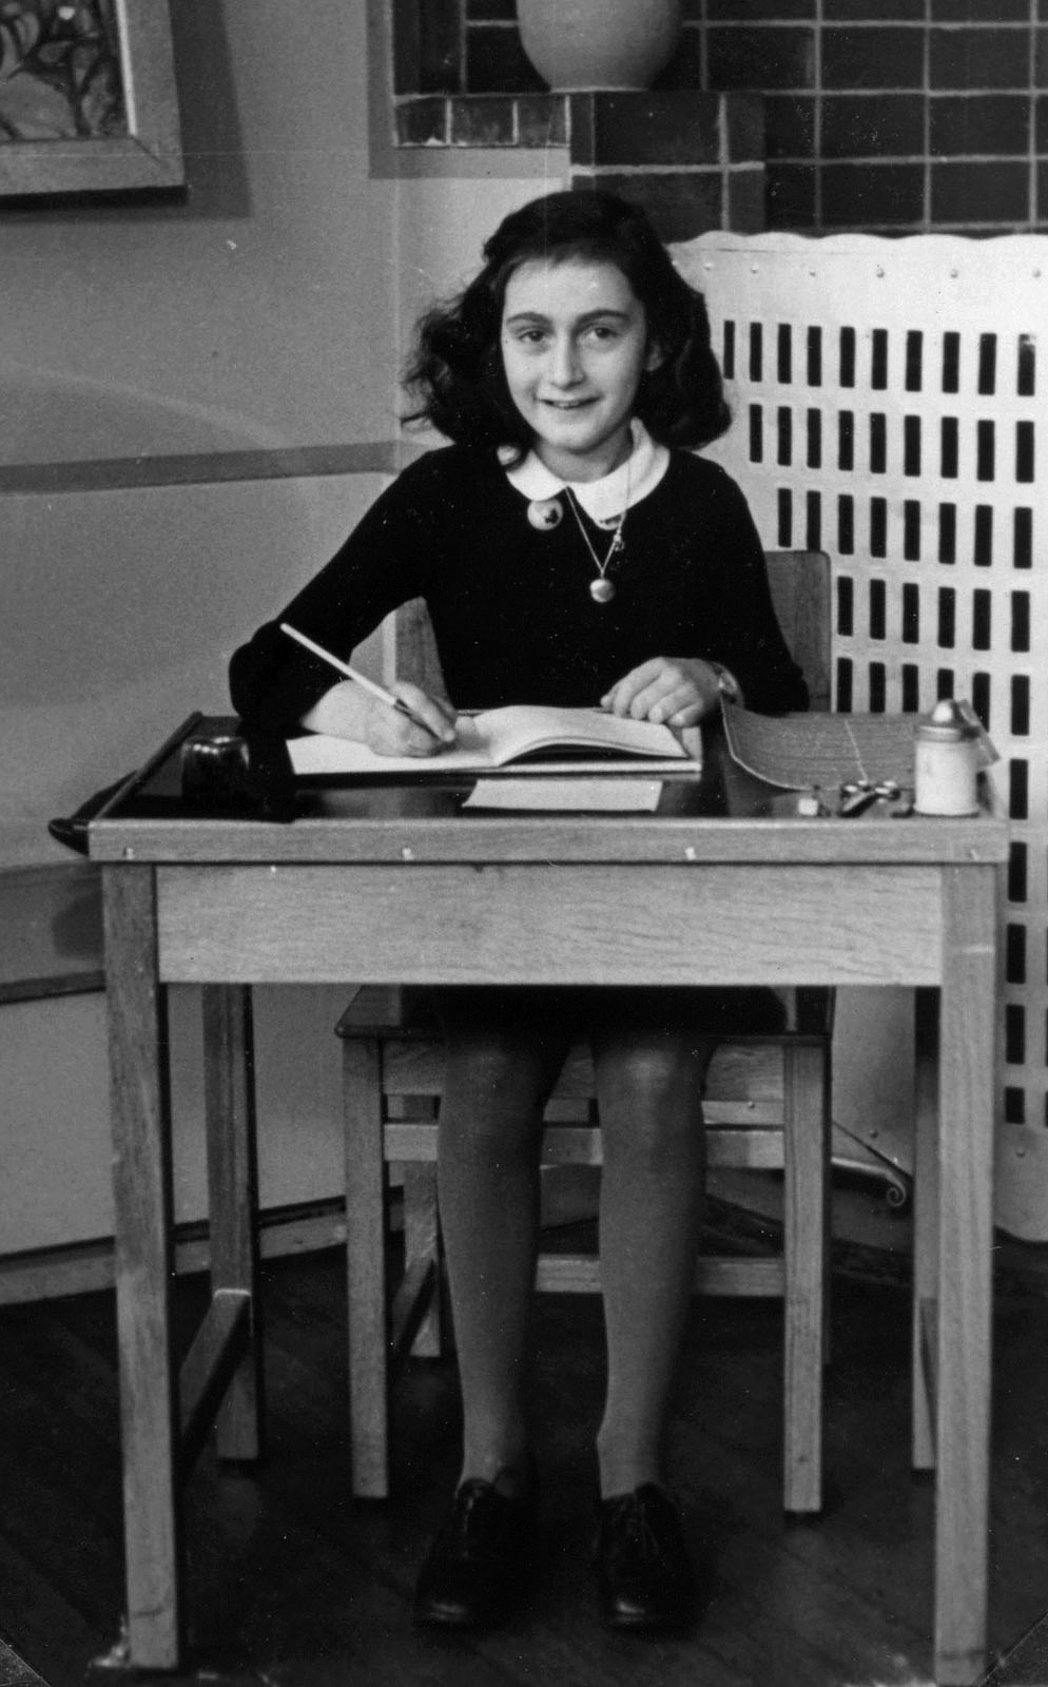 Preview image for LOM object IdeenSet Anne Frank